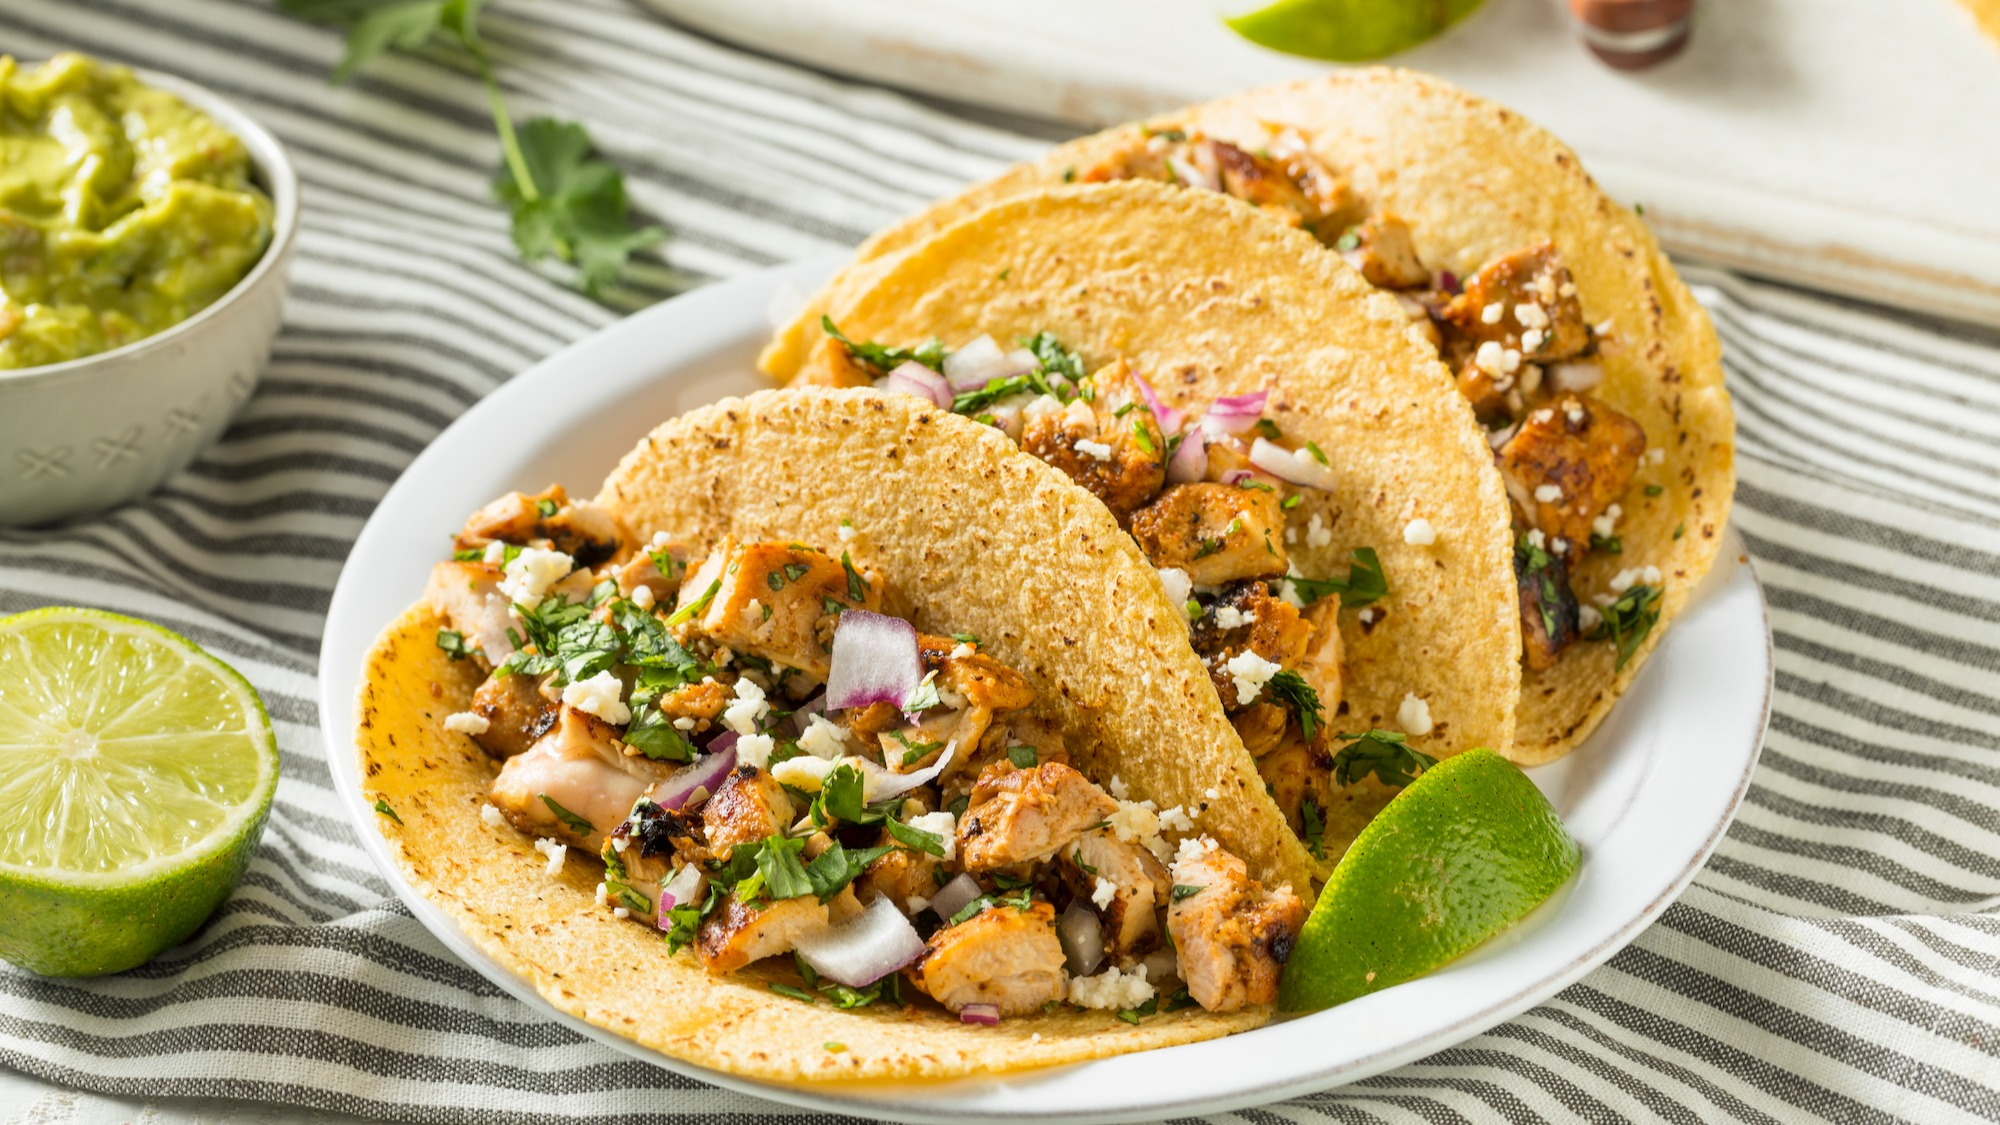 chicken tacos with onion and a side of guacamole and lime